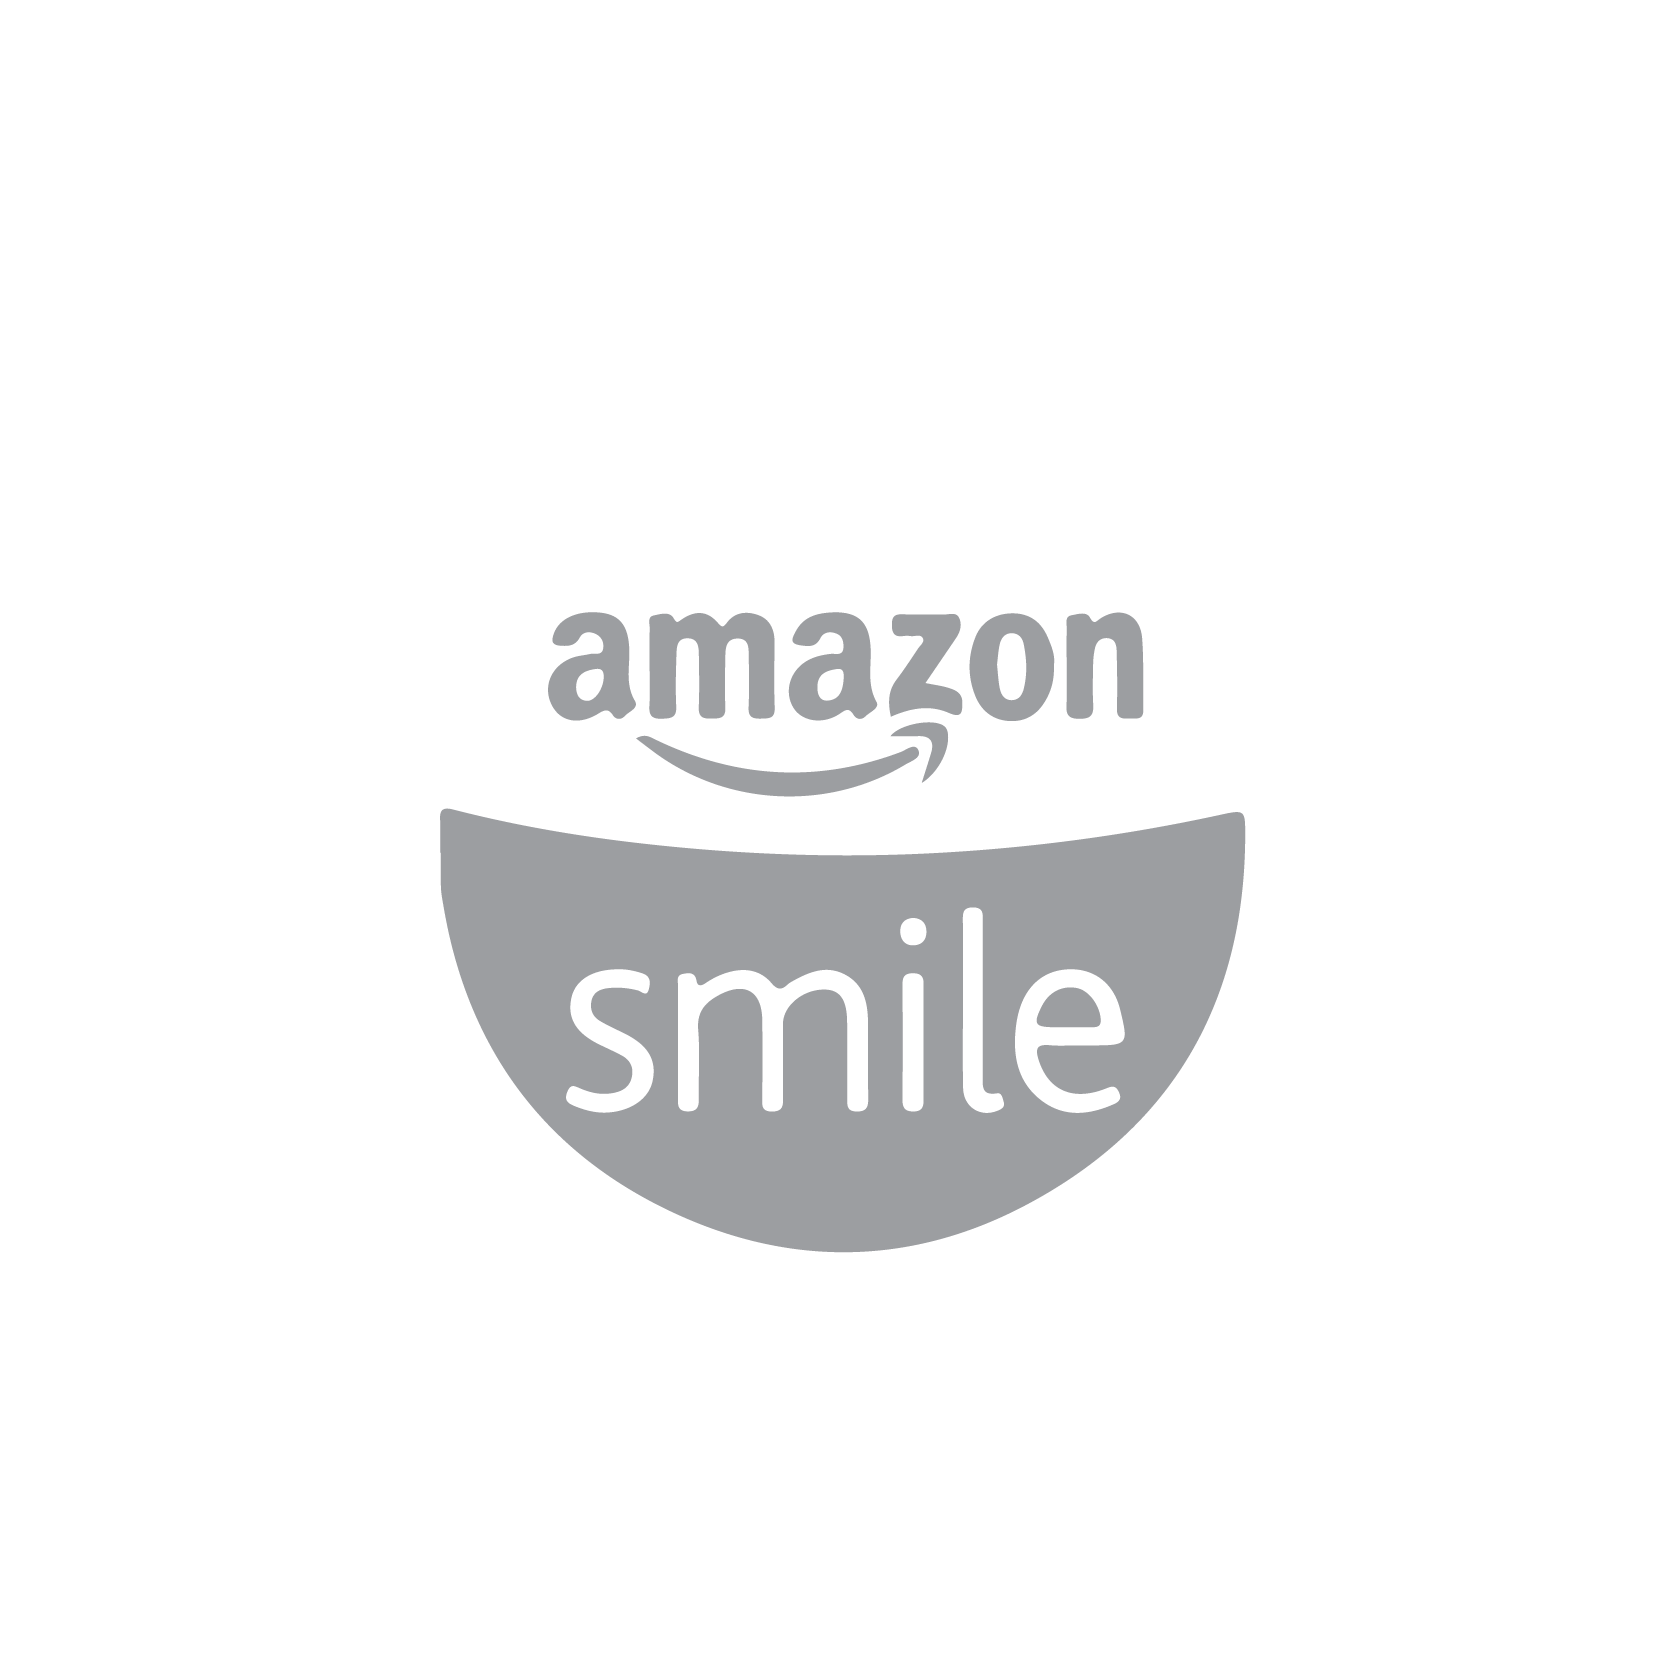 Amazon will donate a percentage of your eligible AmazonSmile purchases to the charitable organization of your choice.  AmazonSmile is the same Amazon you know. Same products, same prices, same service - just shop through  smile.amazon.com  and specify that you would like to give back to Wags and Walks!